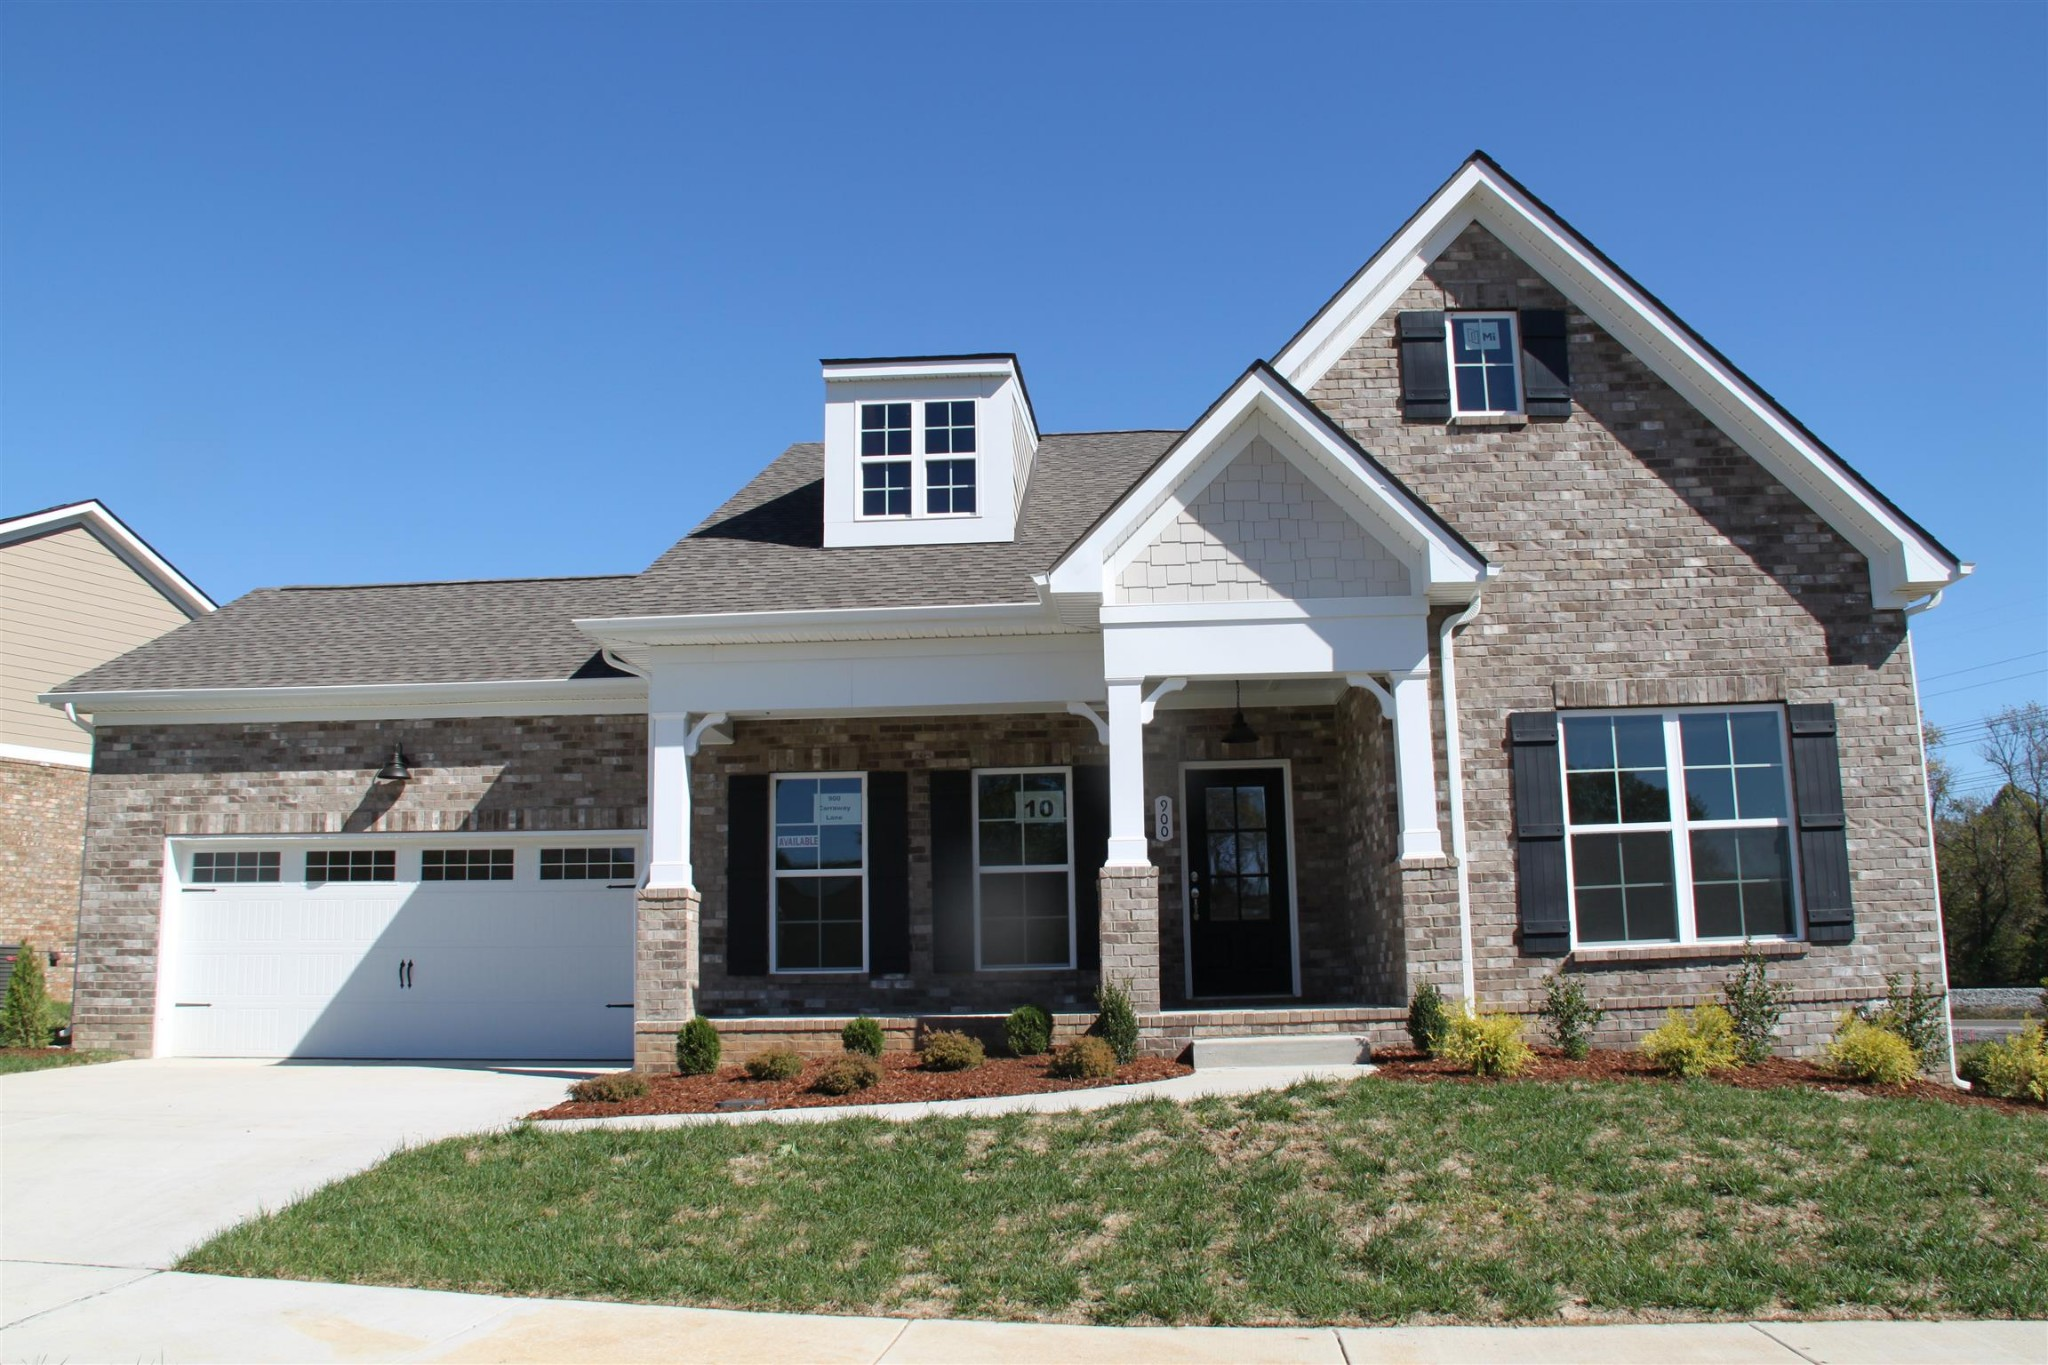 Single family home, built by Regent Homes. Home includes a fence and all upgrades, also has a climate controlled storage room.